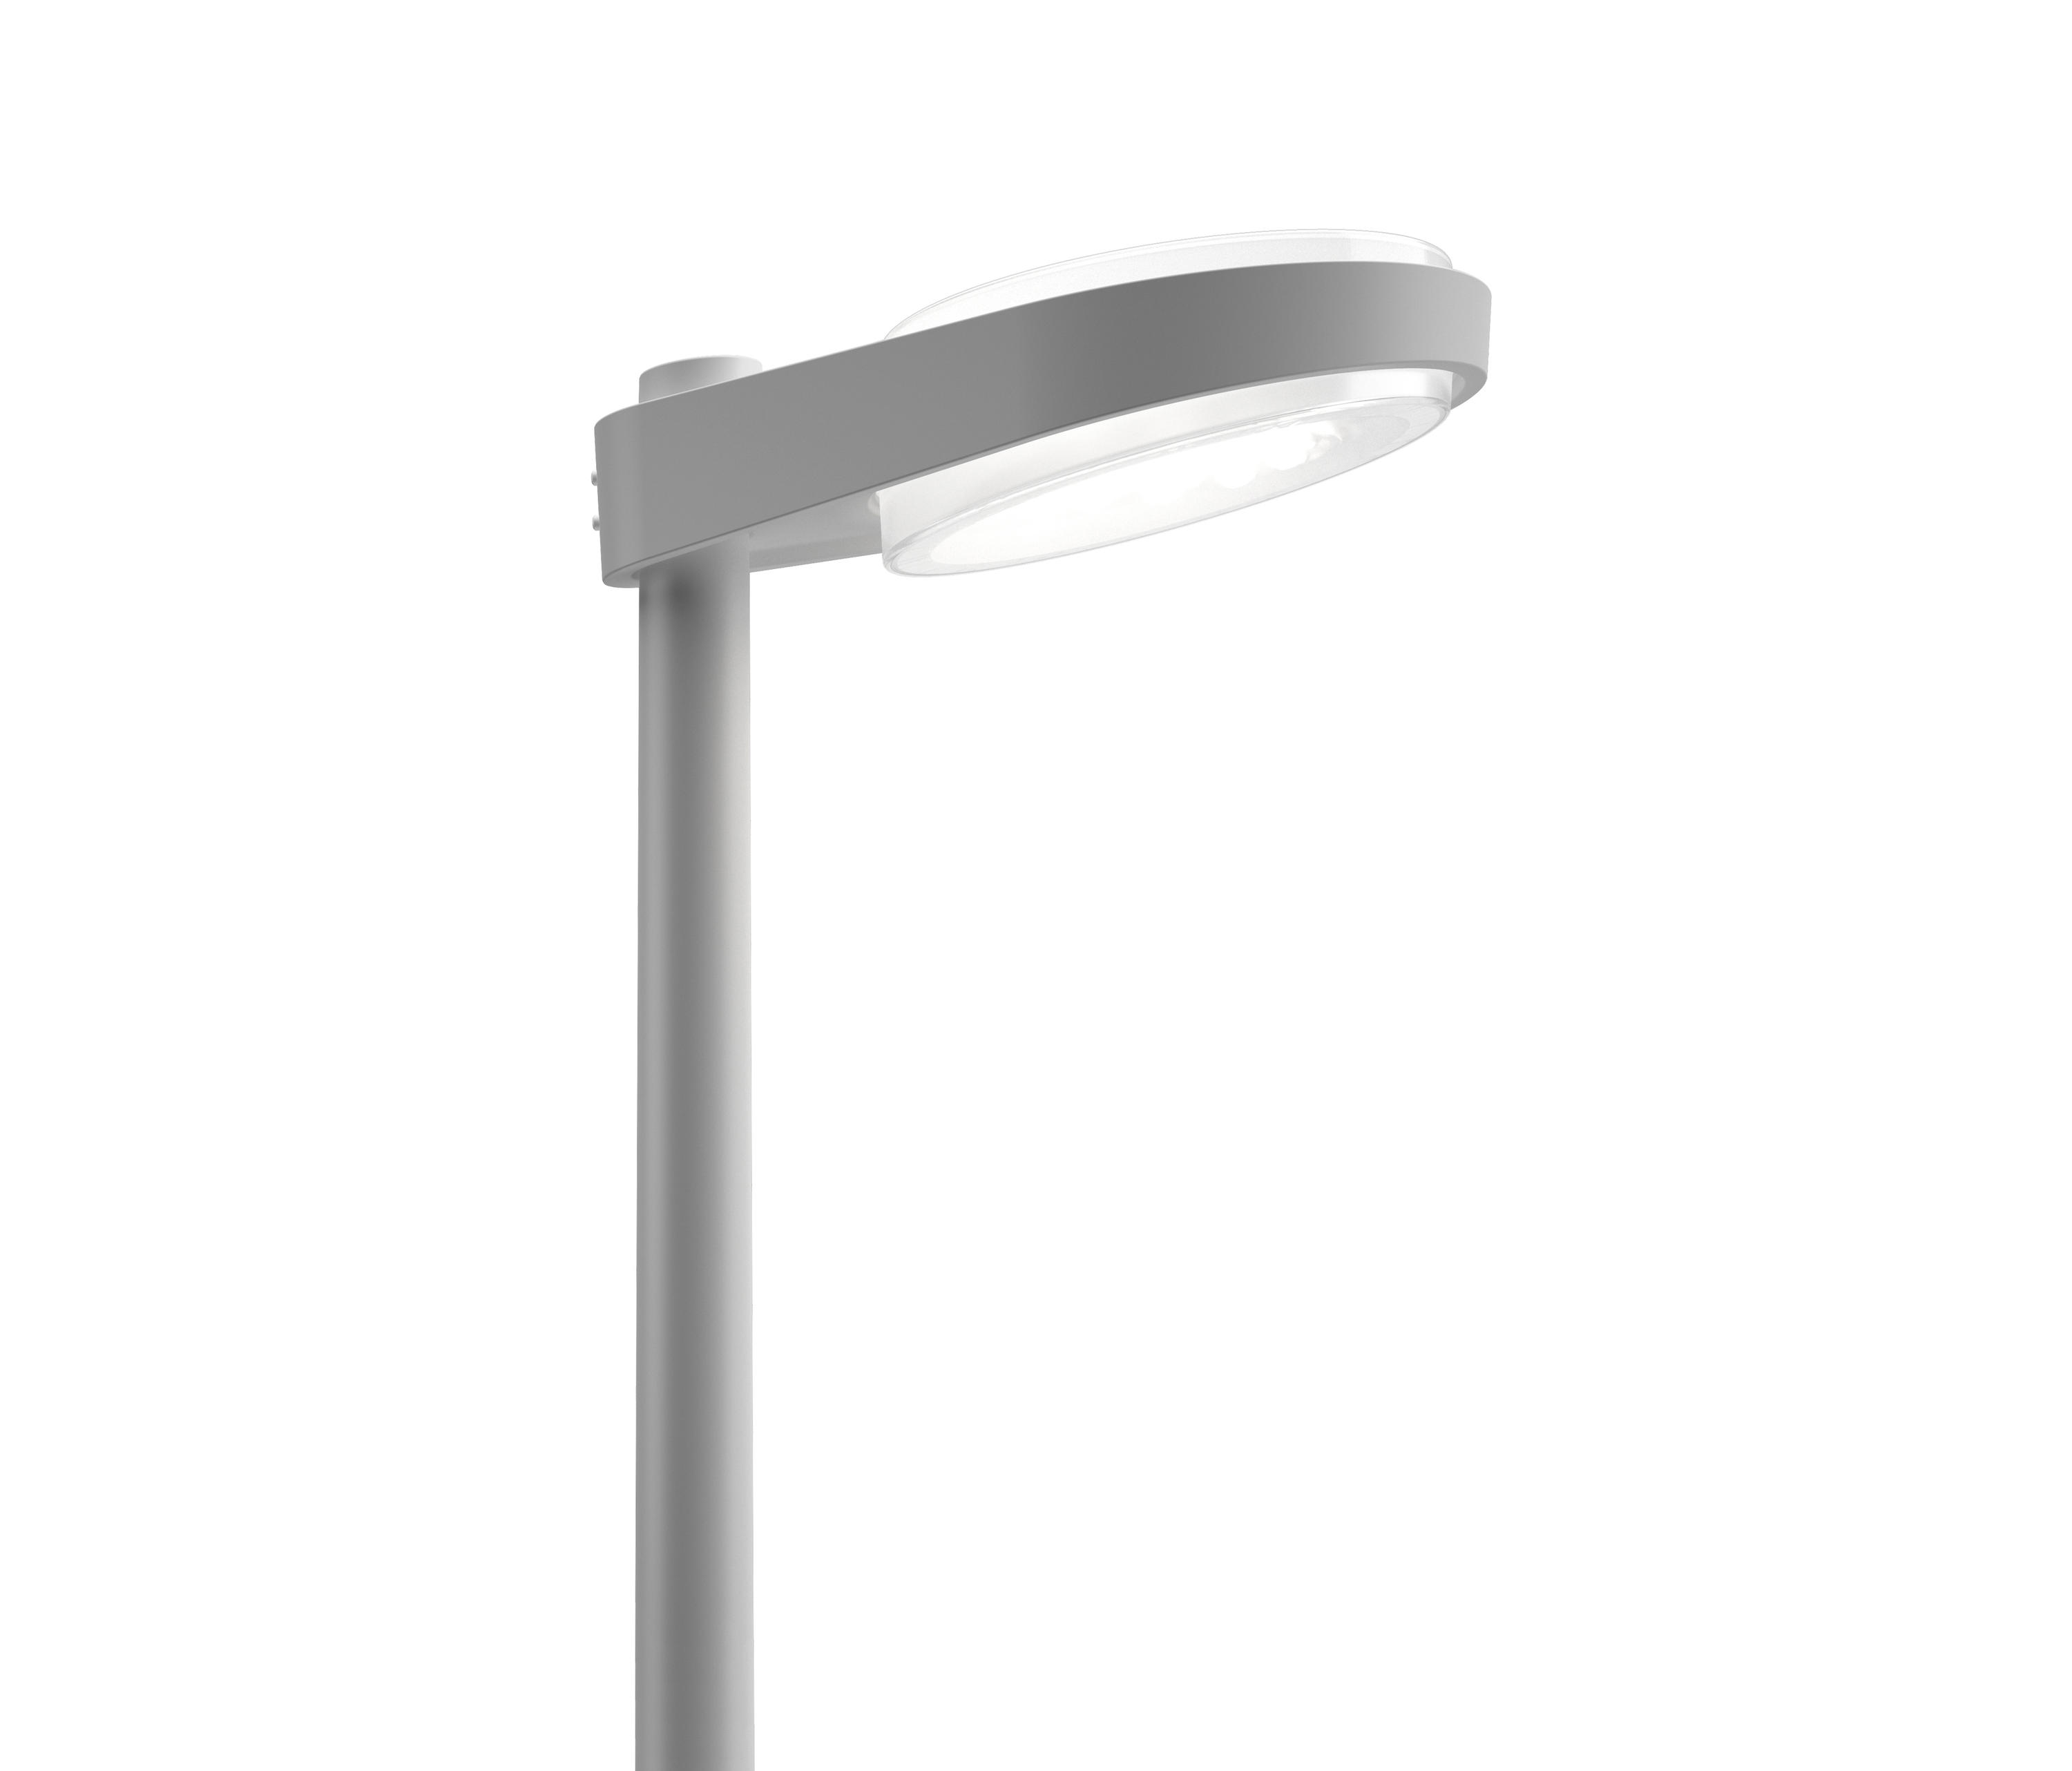 image products fixtures ubpl ub street light purpose urban multi plus luminaire white